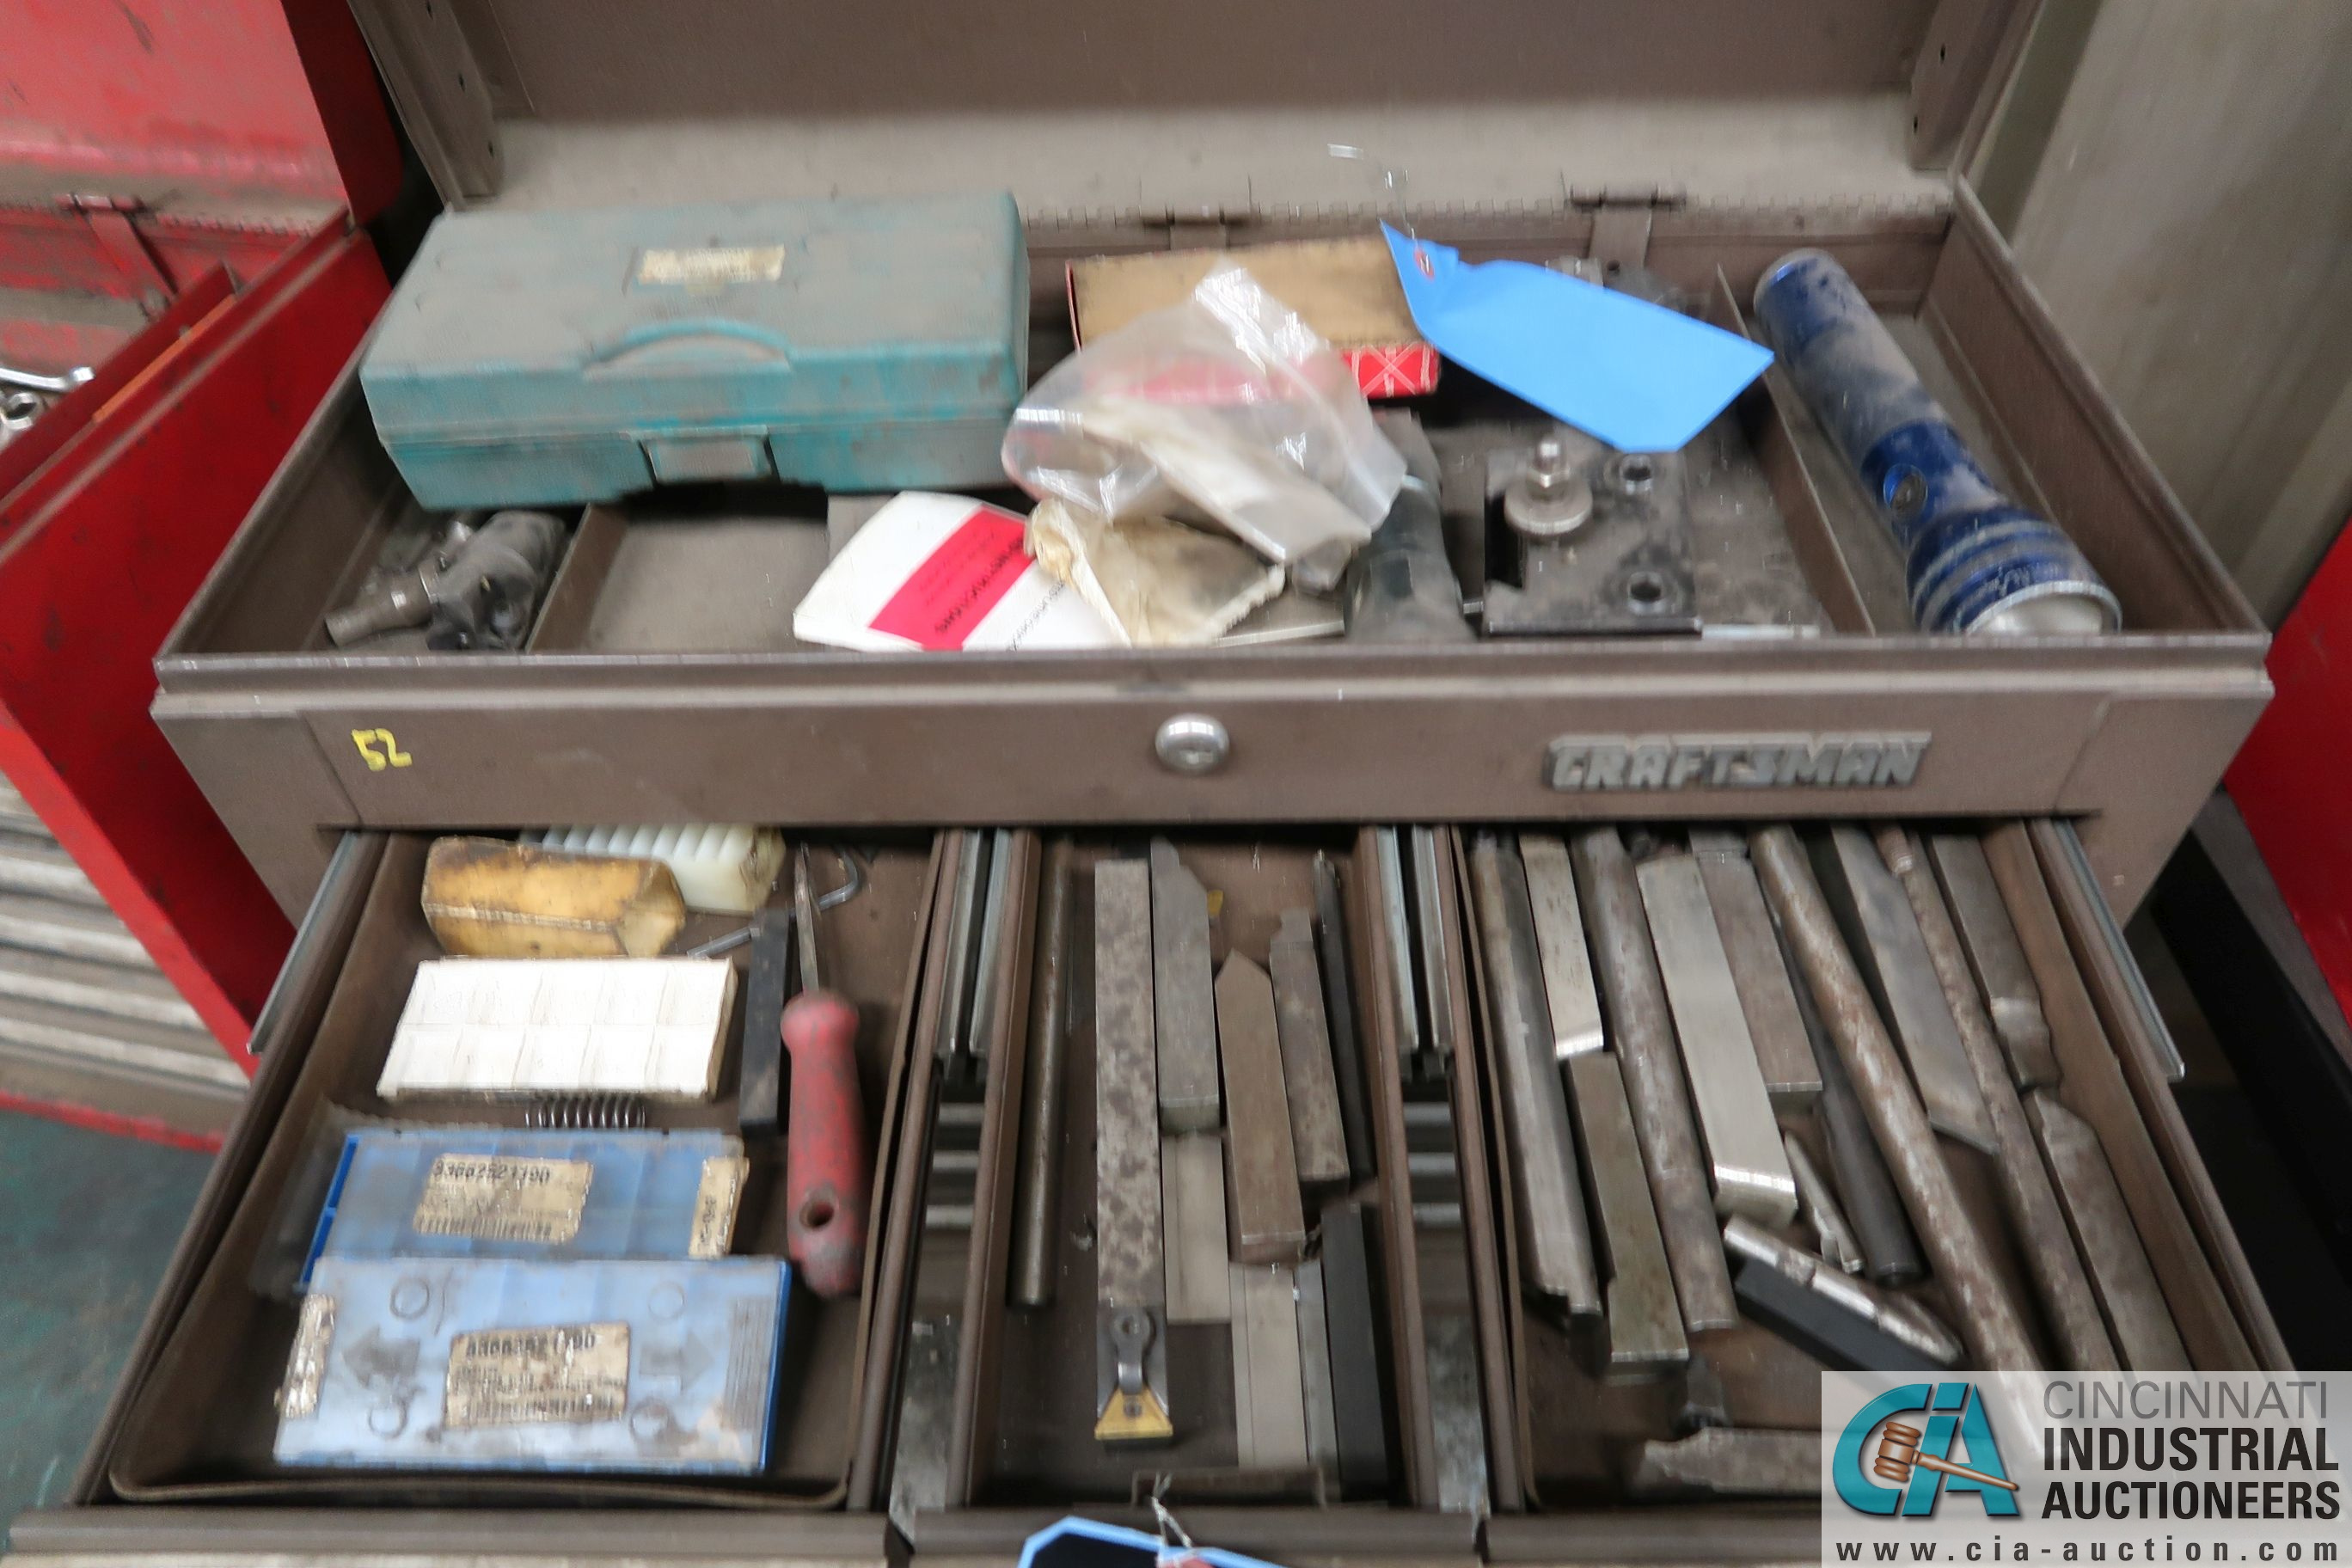 8-DRAWER CRAFTSMAN TOOL BOX WITH TOOLS AND CART - Image 2 of 4